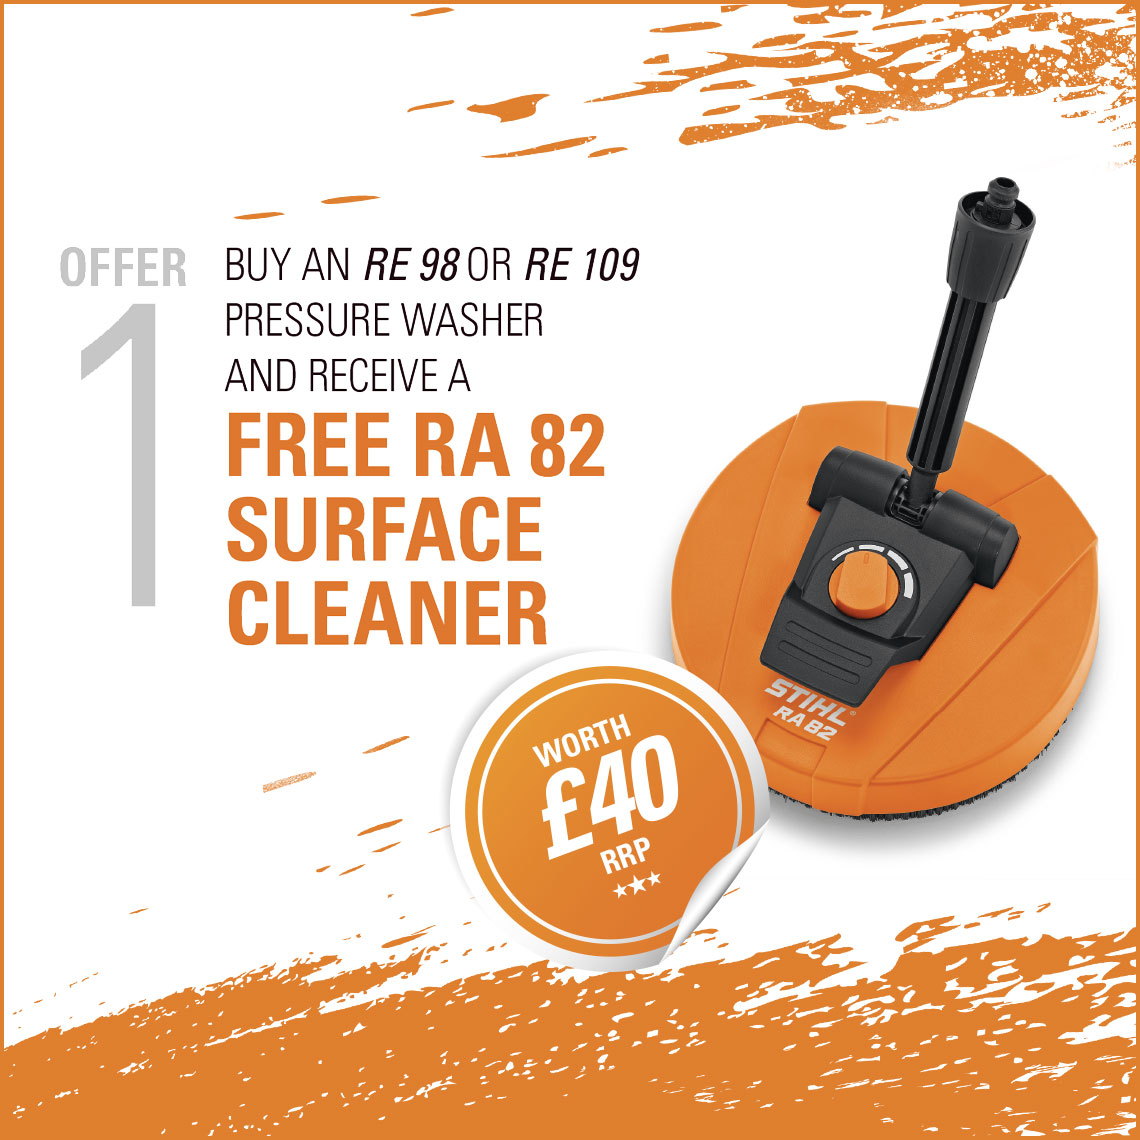 Stihl pressure washer promotion radmore tucker available in store and online at radmore tucker click here to find your pressure washer publicscrutiny Images